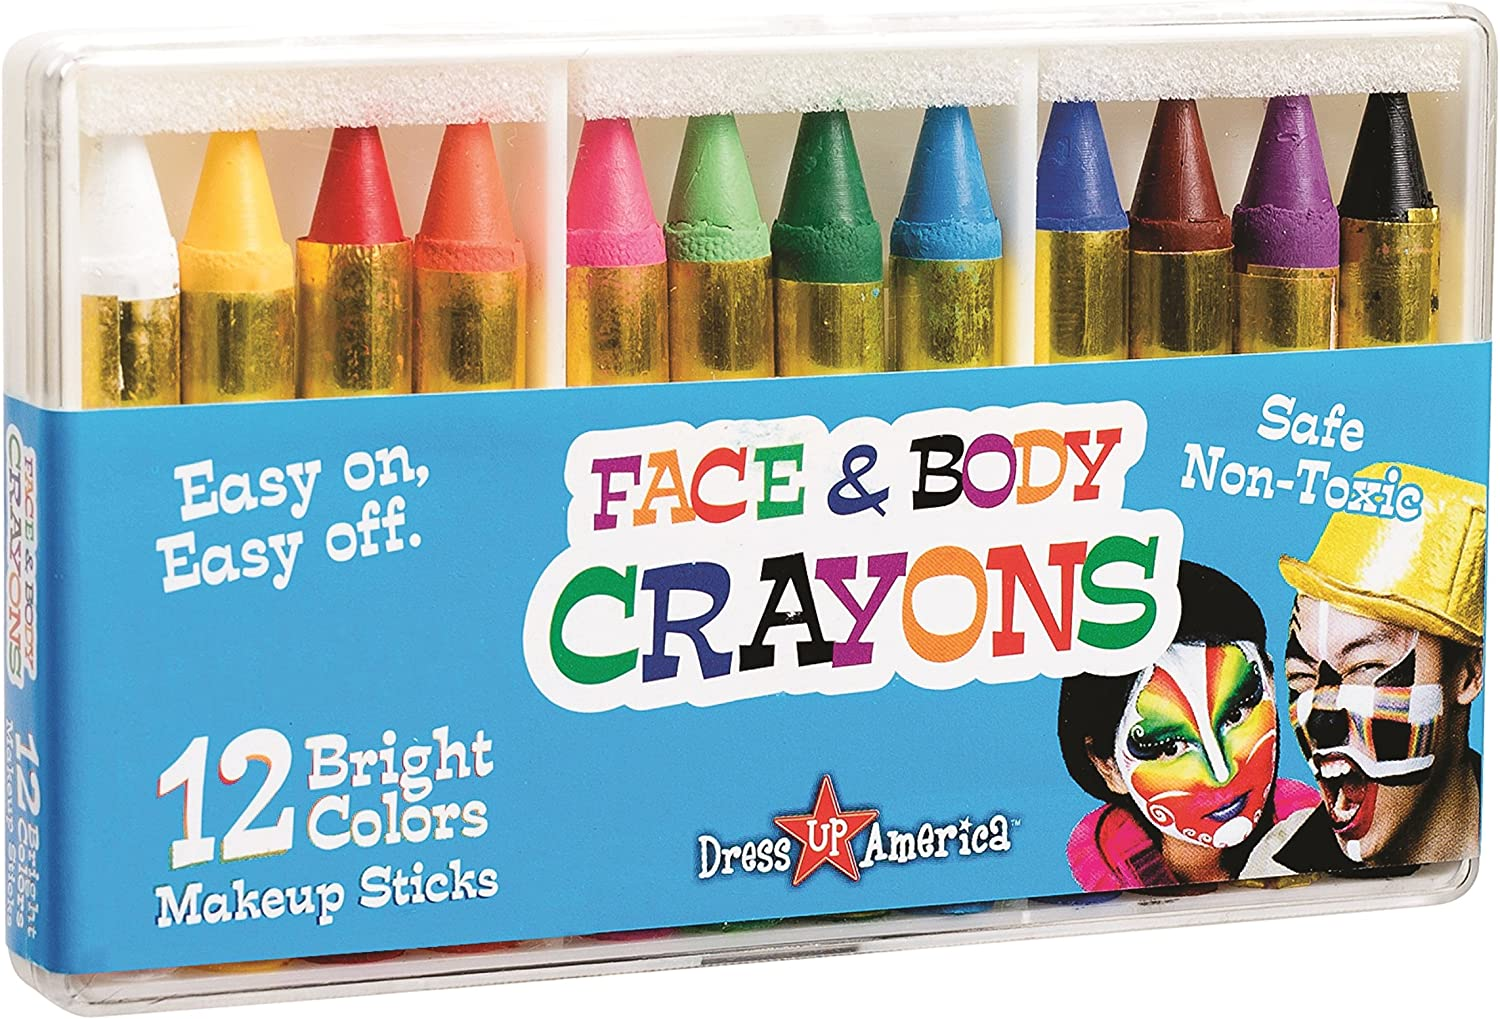 Dress-Up-America Face Paint Kit - Safe, Non-Toxic, Face and Body Paint Crayons Made in Taiwan - Halloween Makeup Face Painting Kit for Kids and Adults (12 piece set)